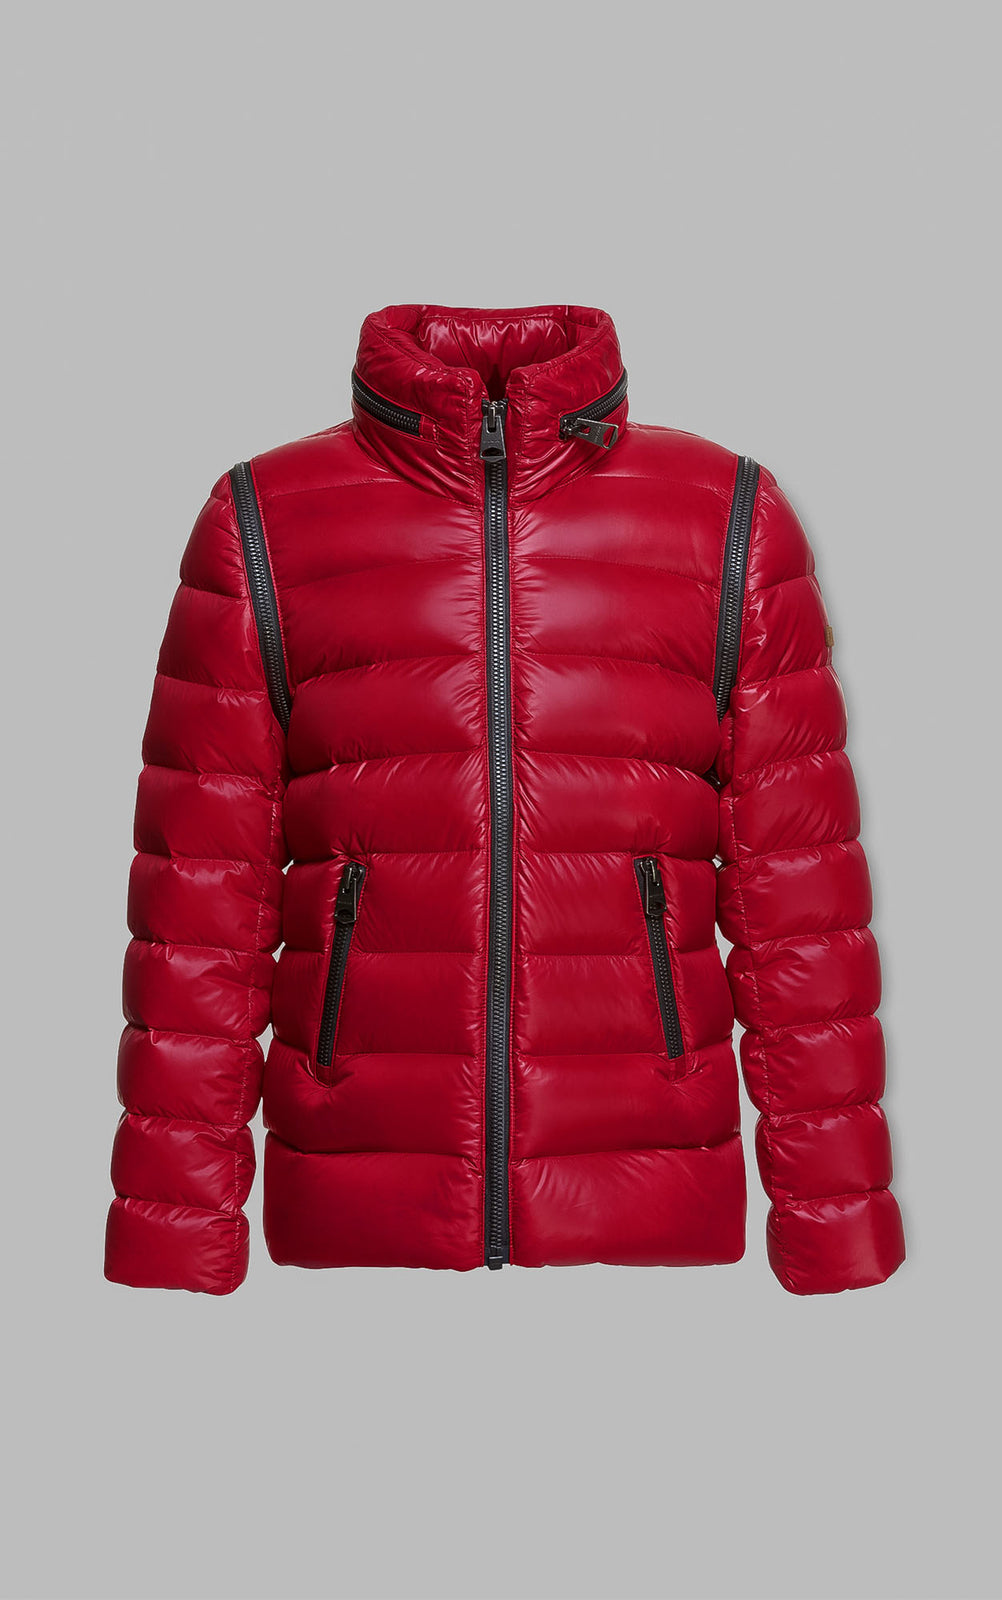 Mackage REMY Jacket -Red